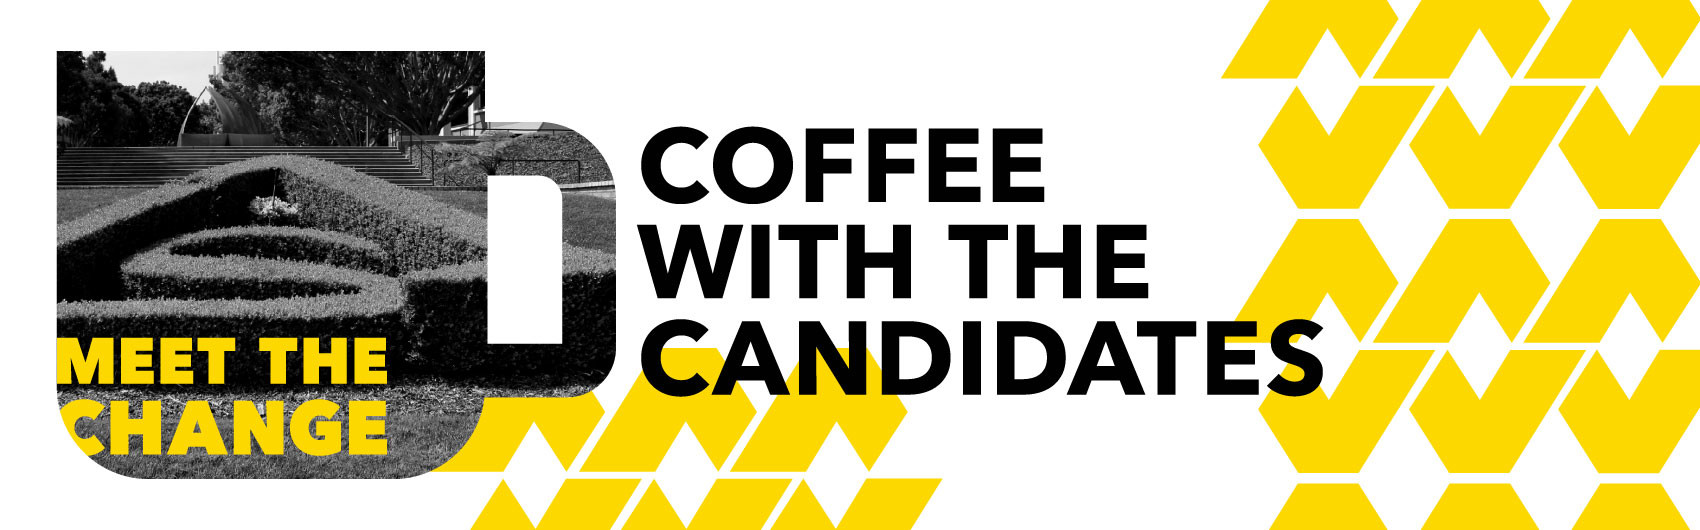 Coffee With The Candidates Banner